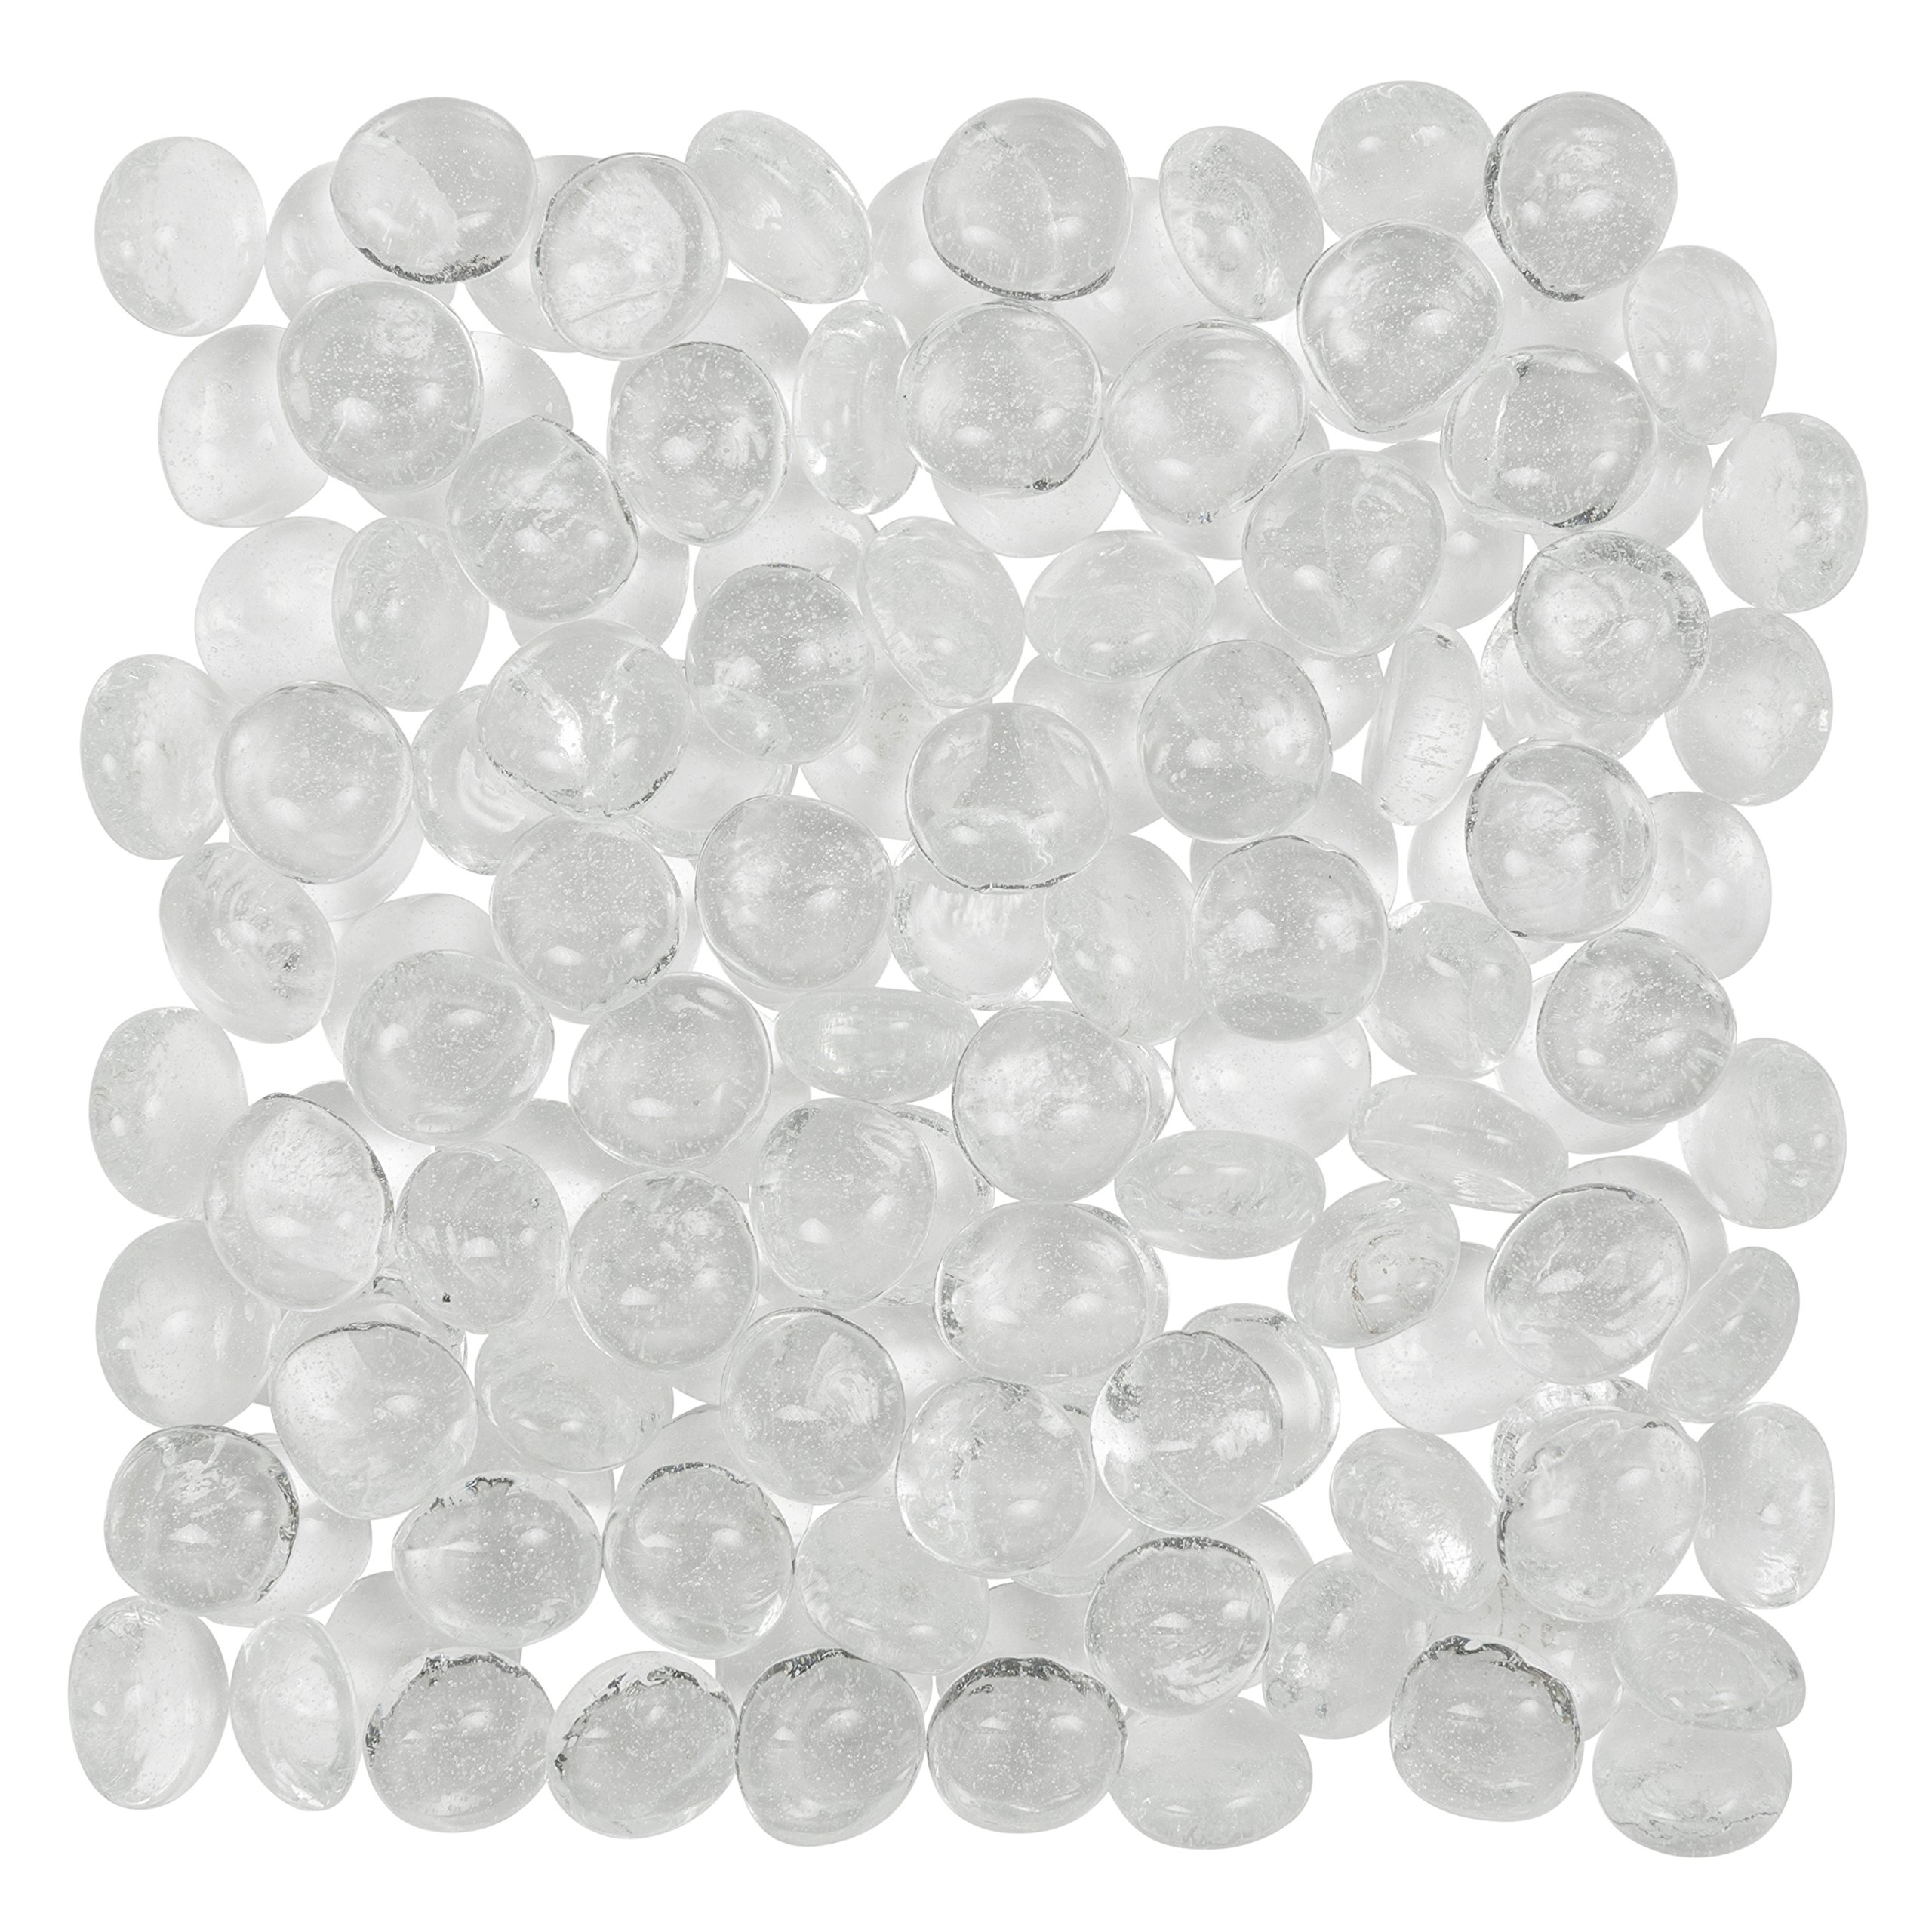 Artisan Supply Clear Glass Gems 1 Lbs. — FILLS 1 1/4 Cups Vol. —Non-Toxic Lead Free Vase Filler, Table Scatter, Aquarium Fillers — Beautiful, Smooth, Fun, Vibrant Colors Crafted in the USA